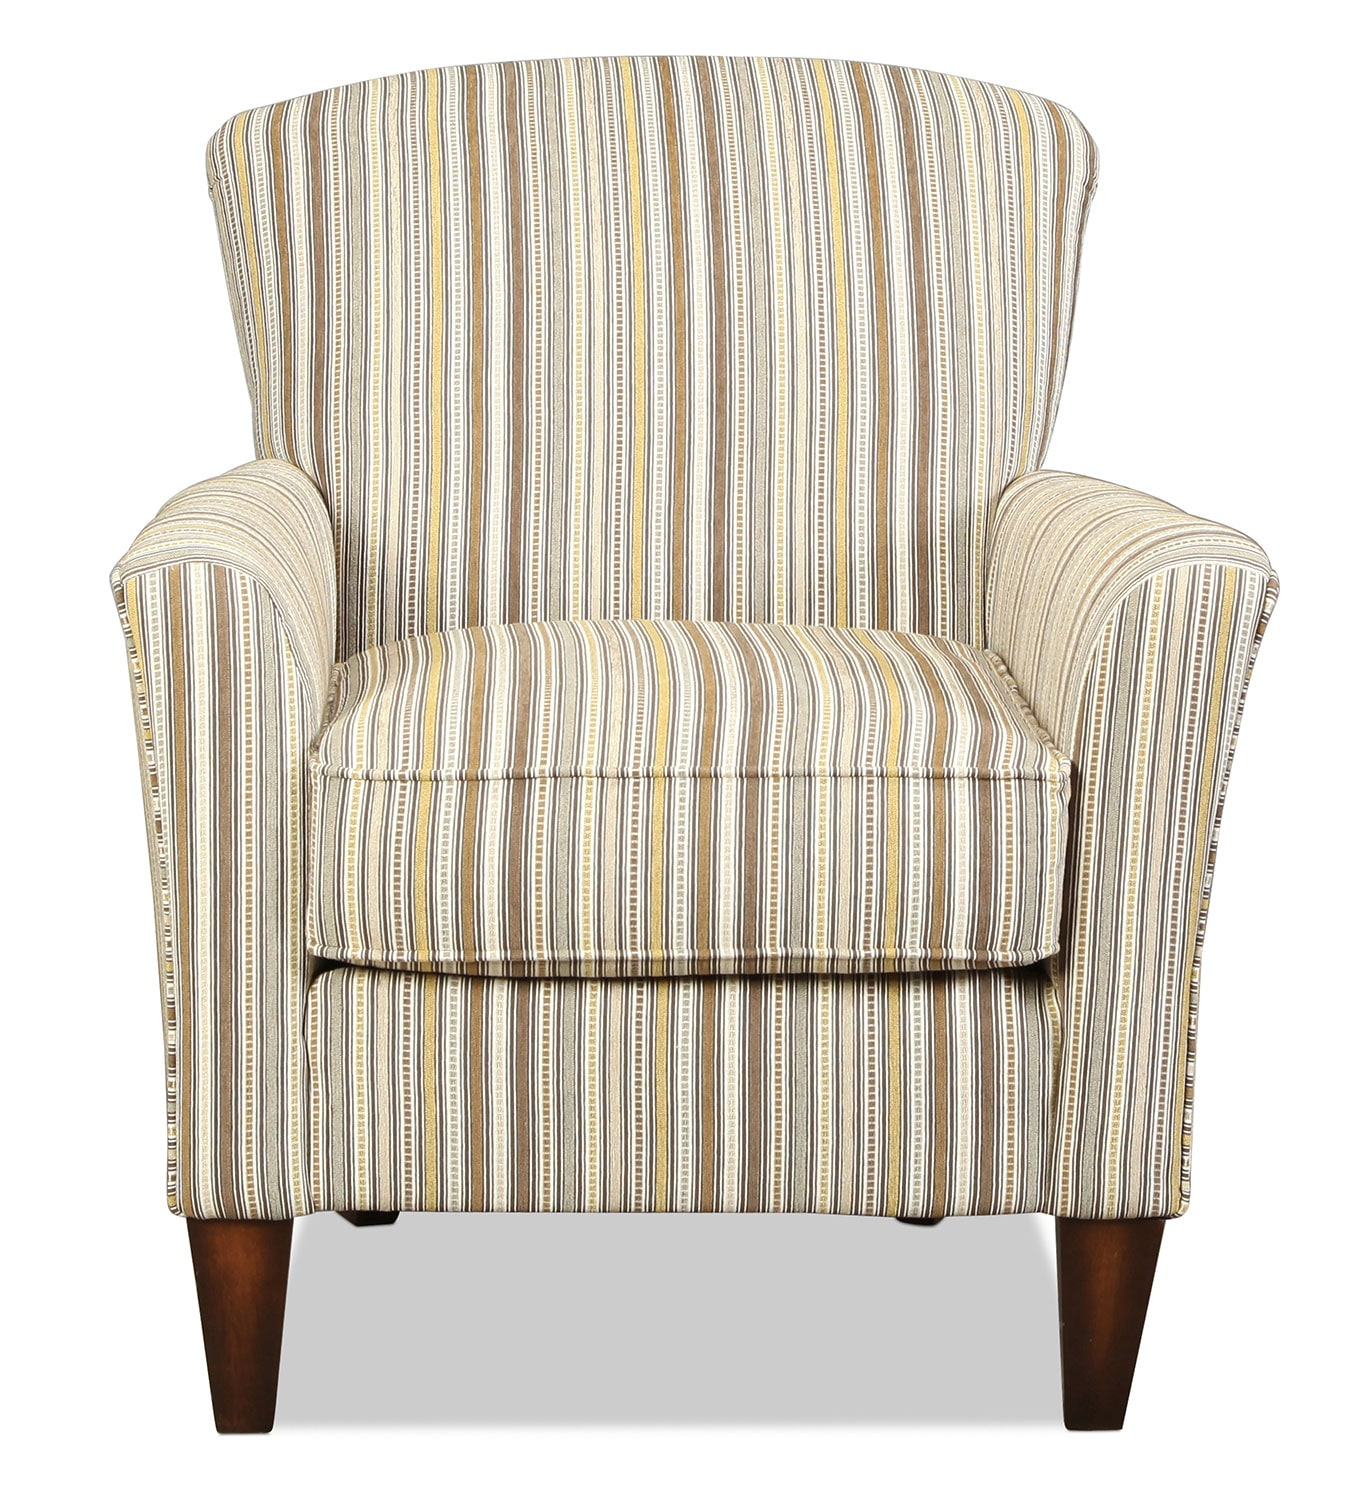 Lonsdale Accent Chair - Striped